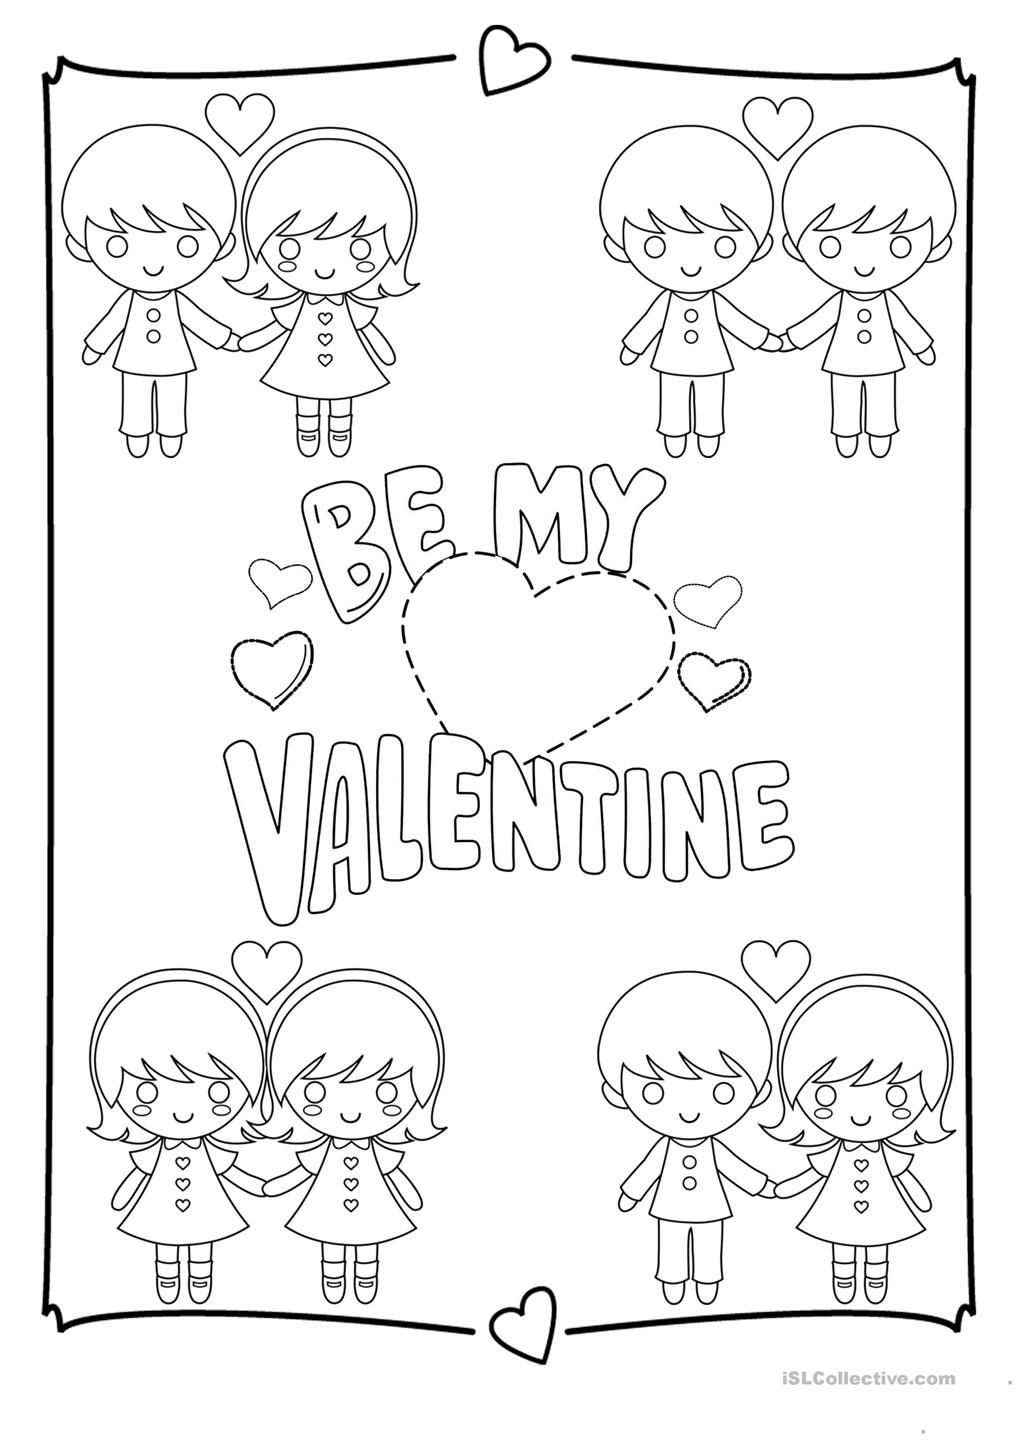 Valentines Day Coloring Page  Valentines day coloring page